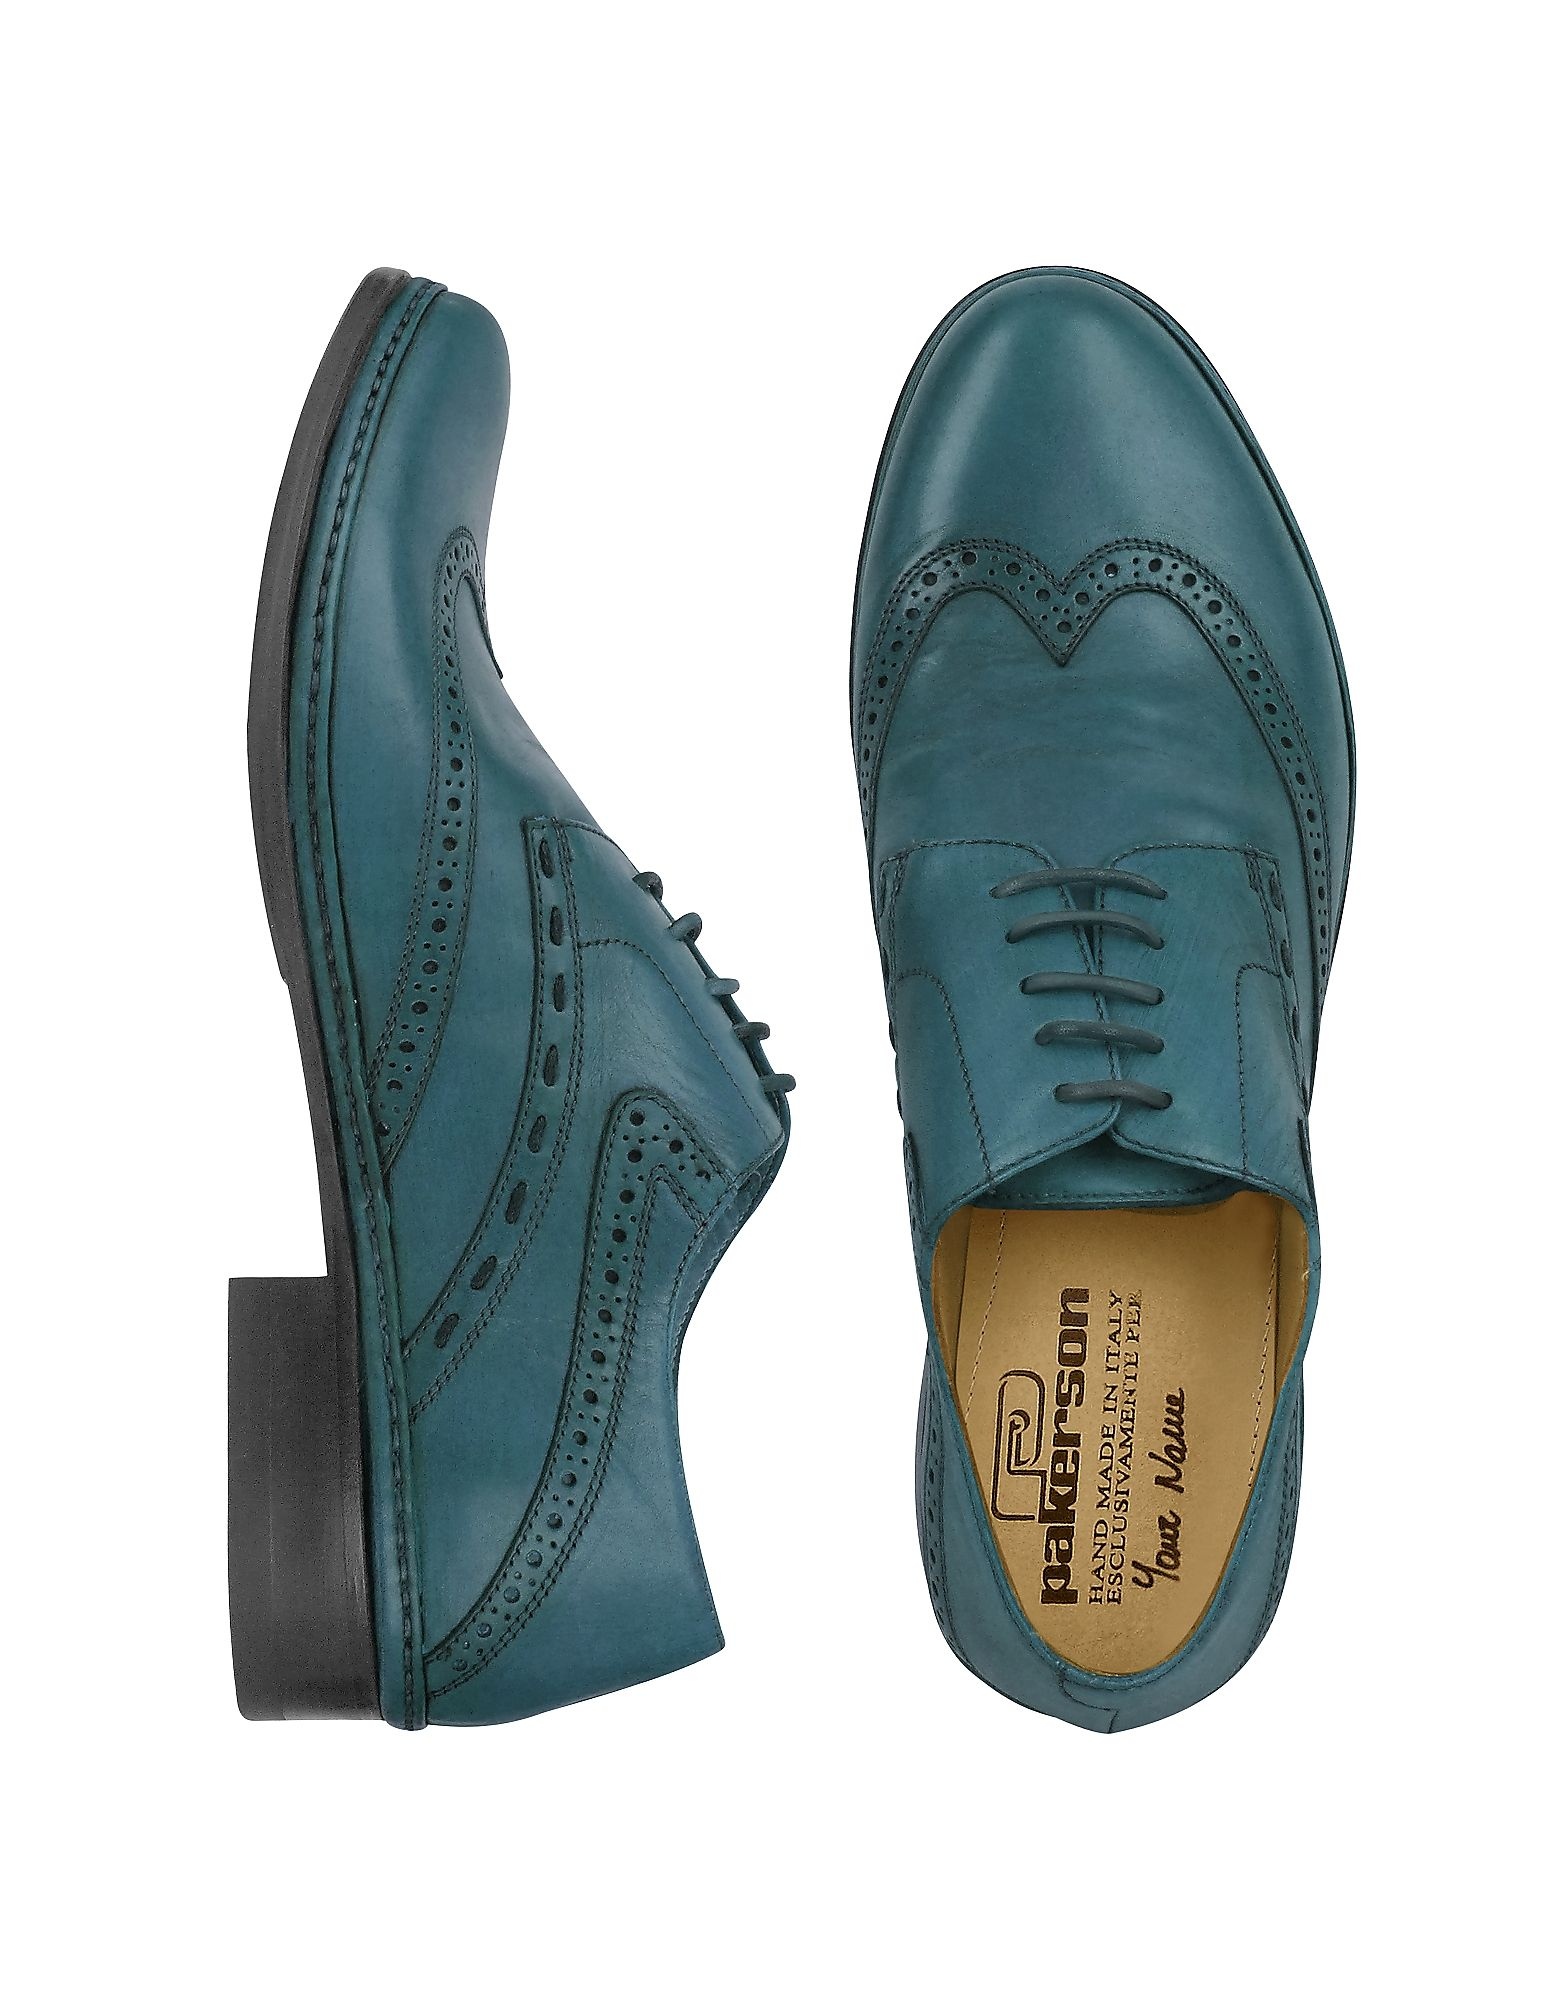 Pakerson Designer Shoes, Dark Handmade Italian Leather Wingtip Oxford Shoes